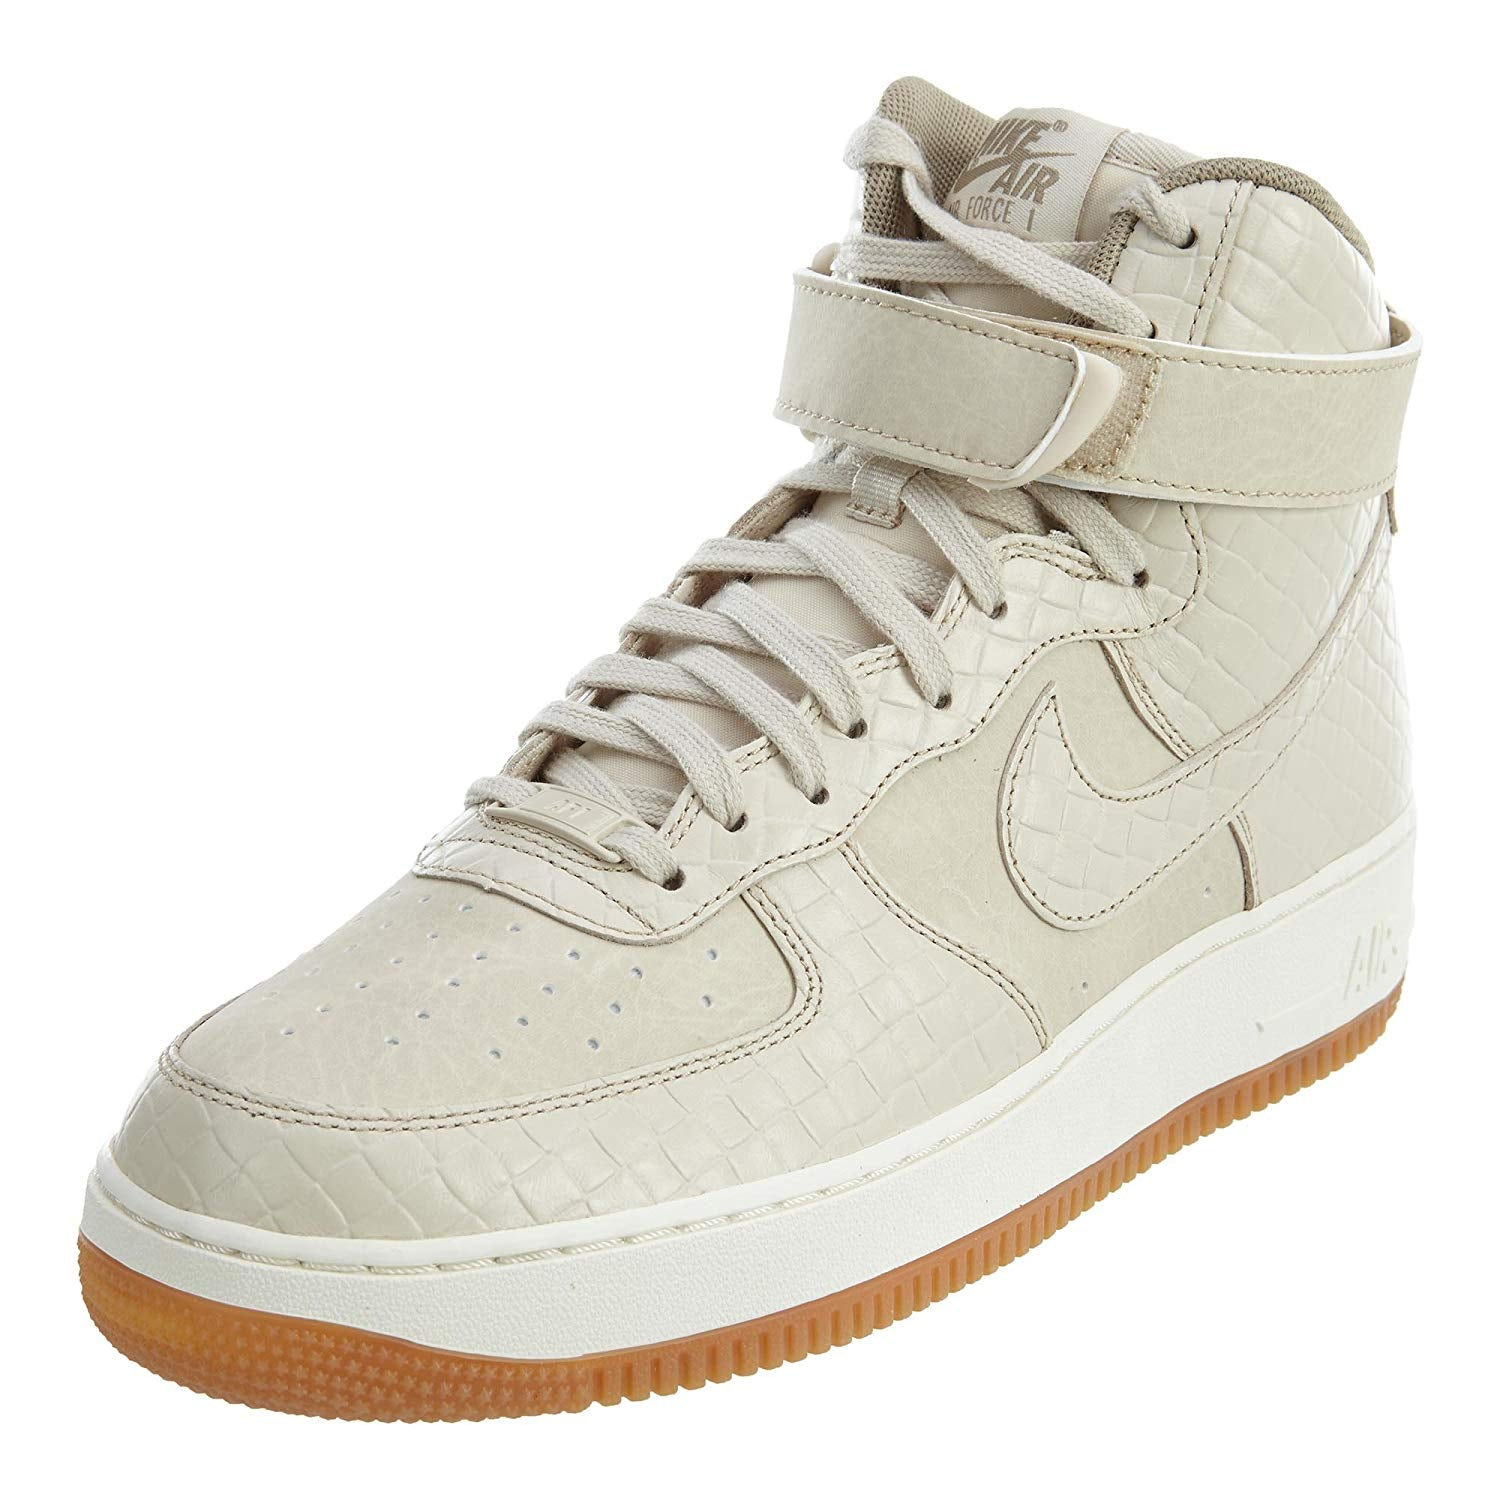 wholesale dealer 81d3b cbeb2 Load image into Gallery viewer, NIKE Air Force 1 Hi Premium Oatmeal Oatmeal-  ...